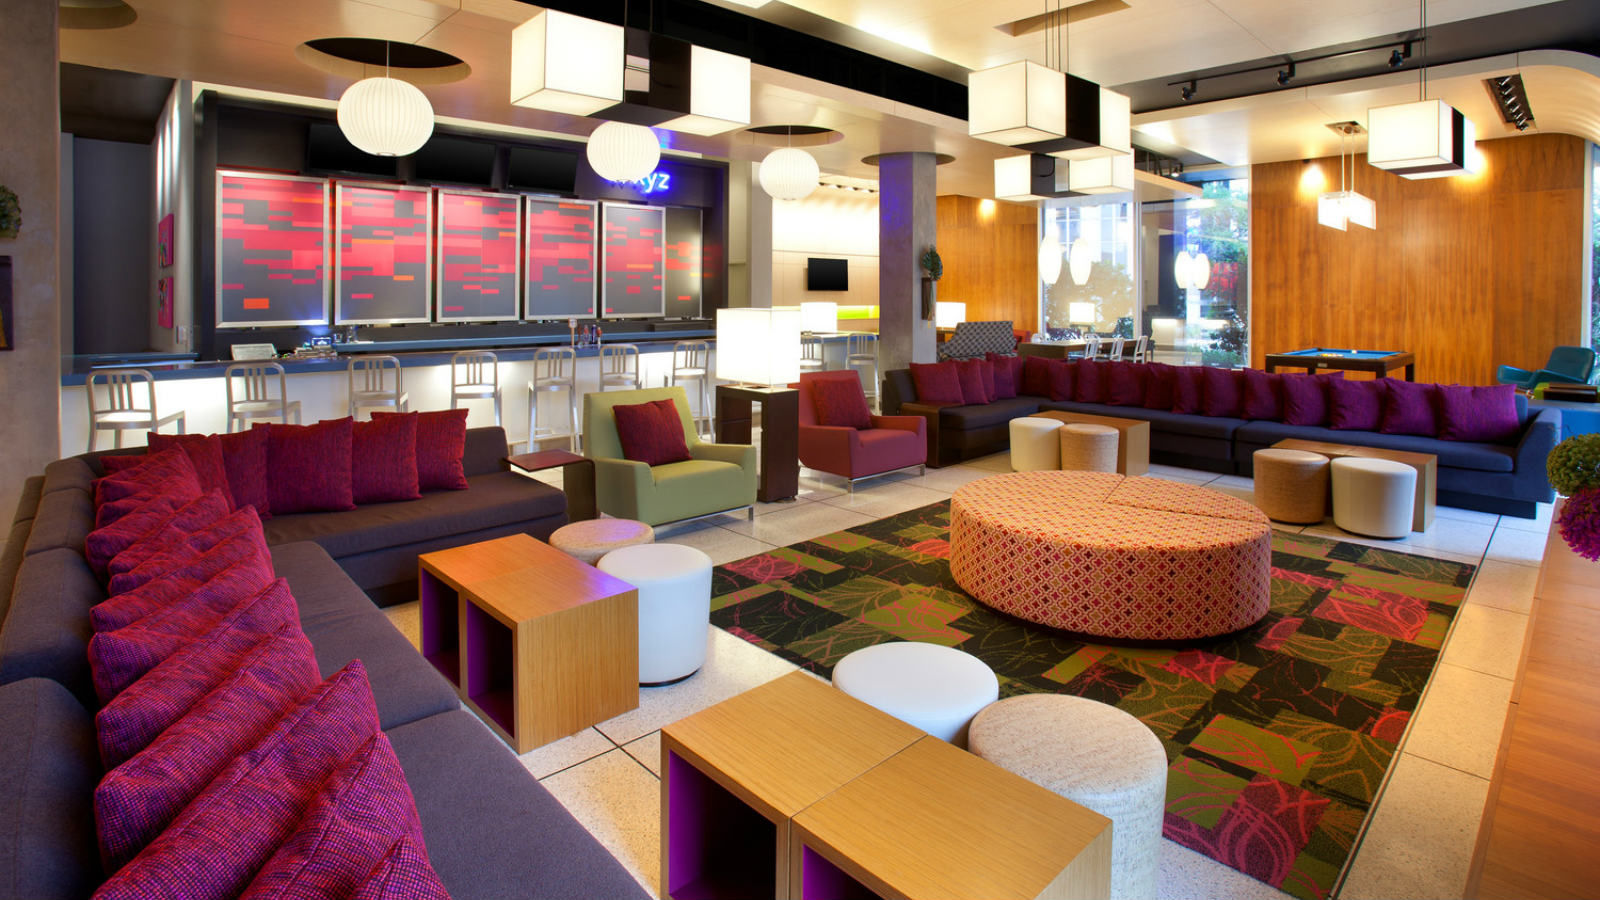 Aloft Orlando Downtown - Awards & Recognitions